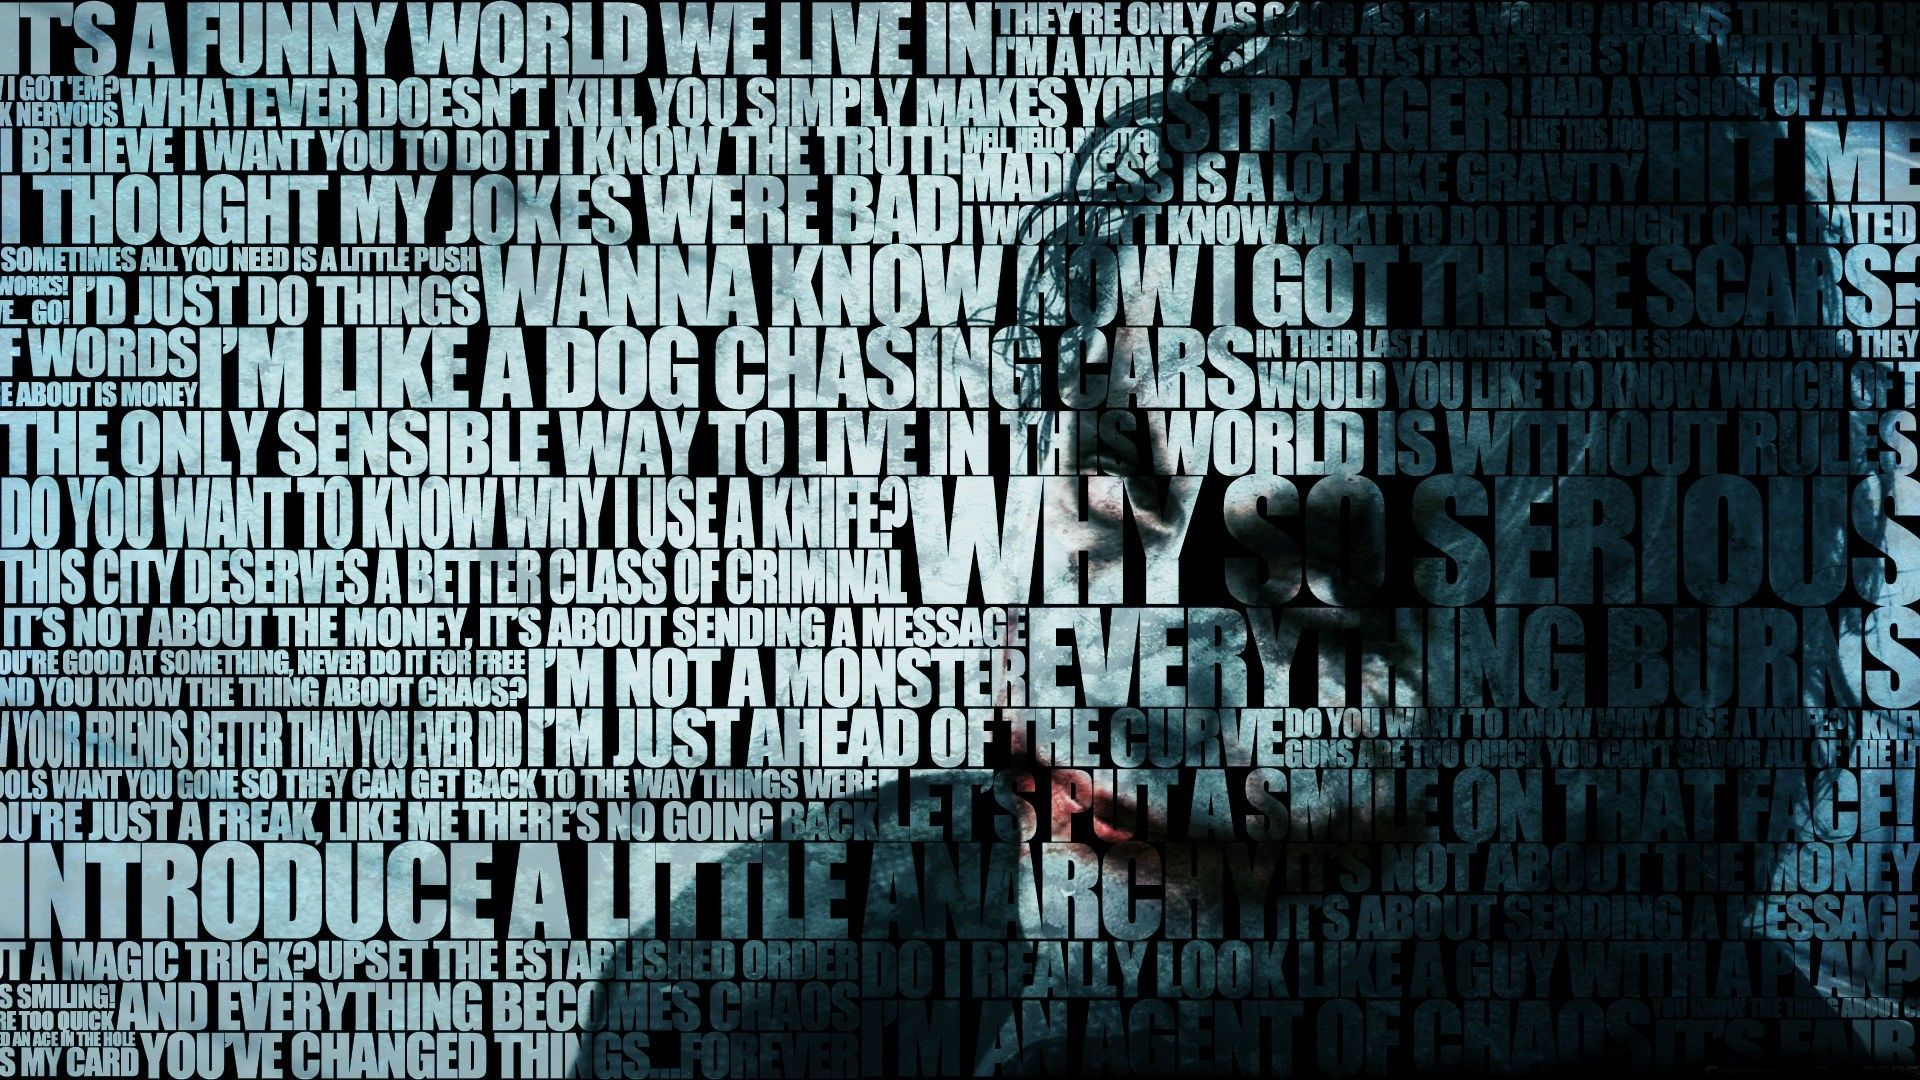 joker wallpaper 1080p is cool wallpapers | joker | pinterest | joker